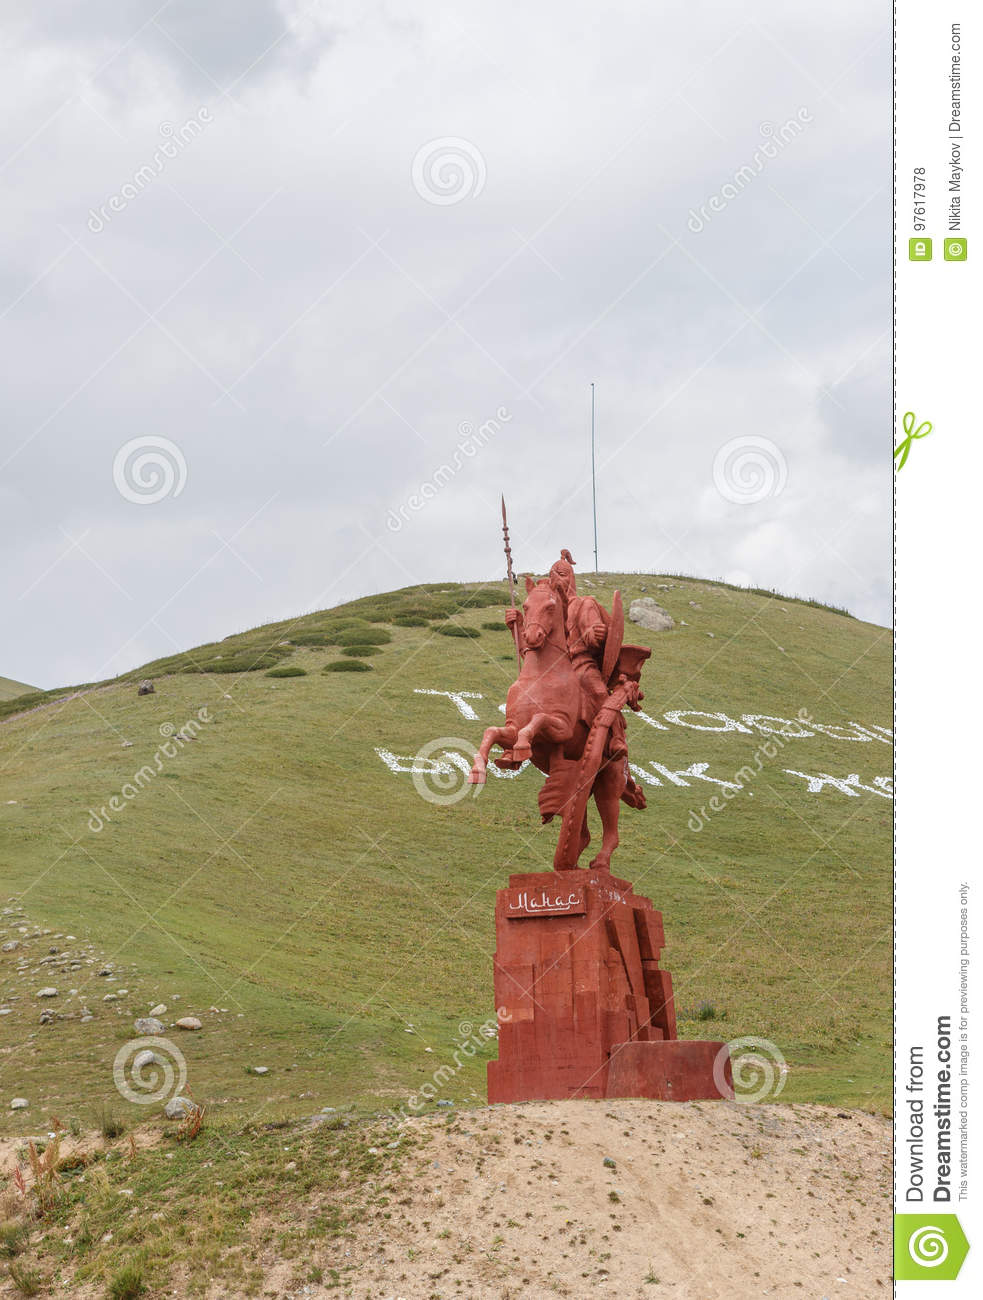 Valley Talas, Kyrgyzstan - August 15, 2016: Monument to Manas